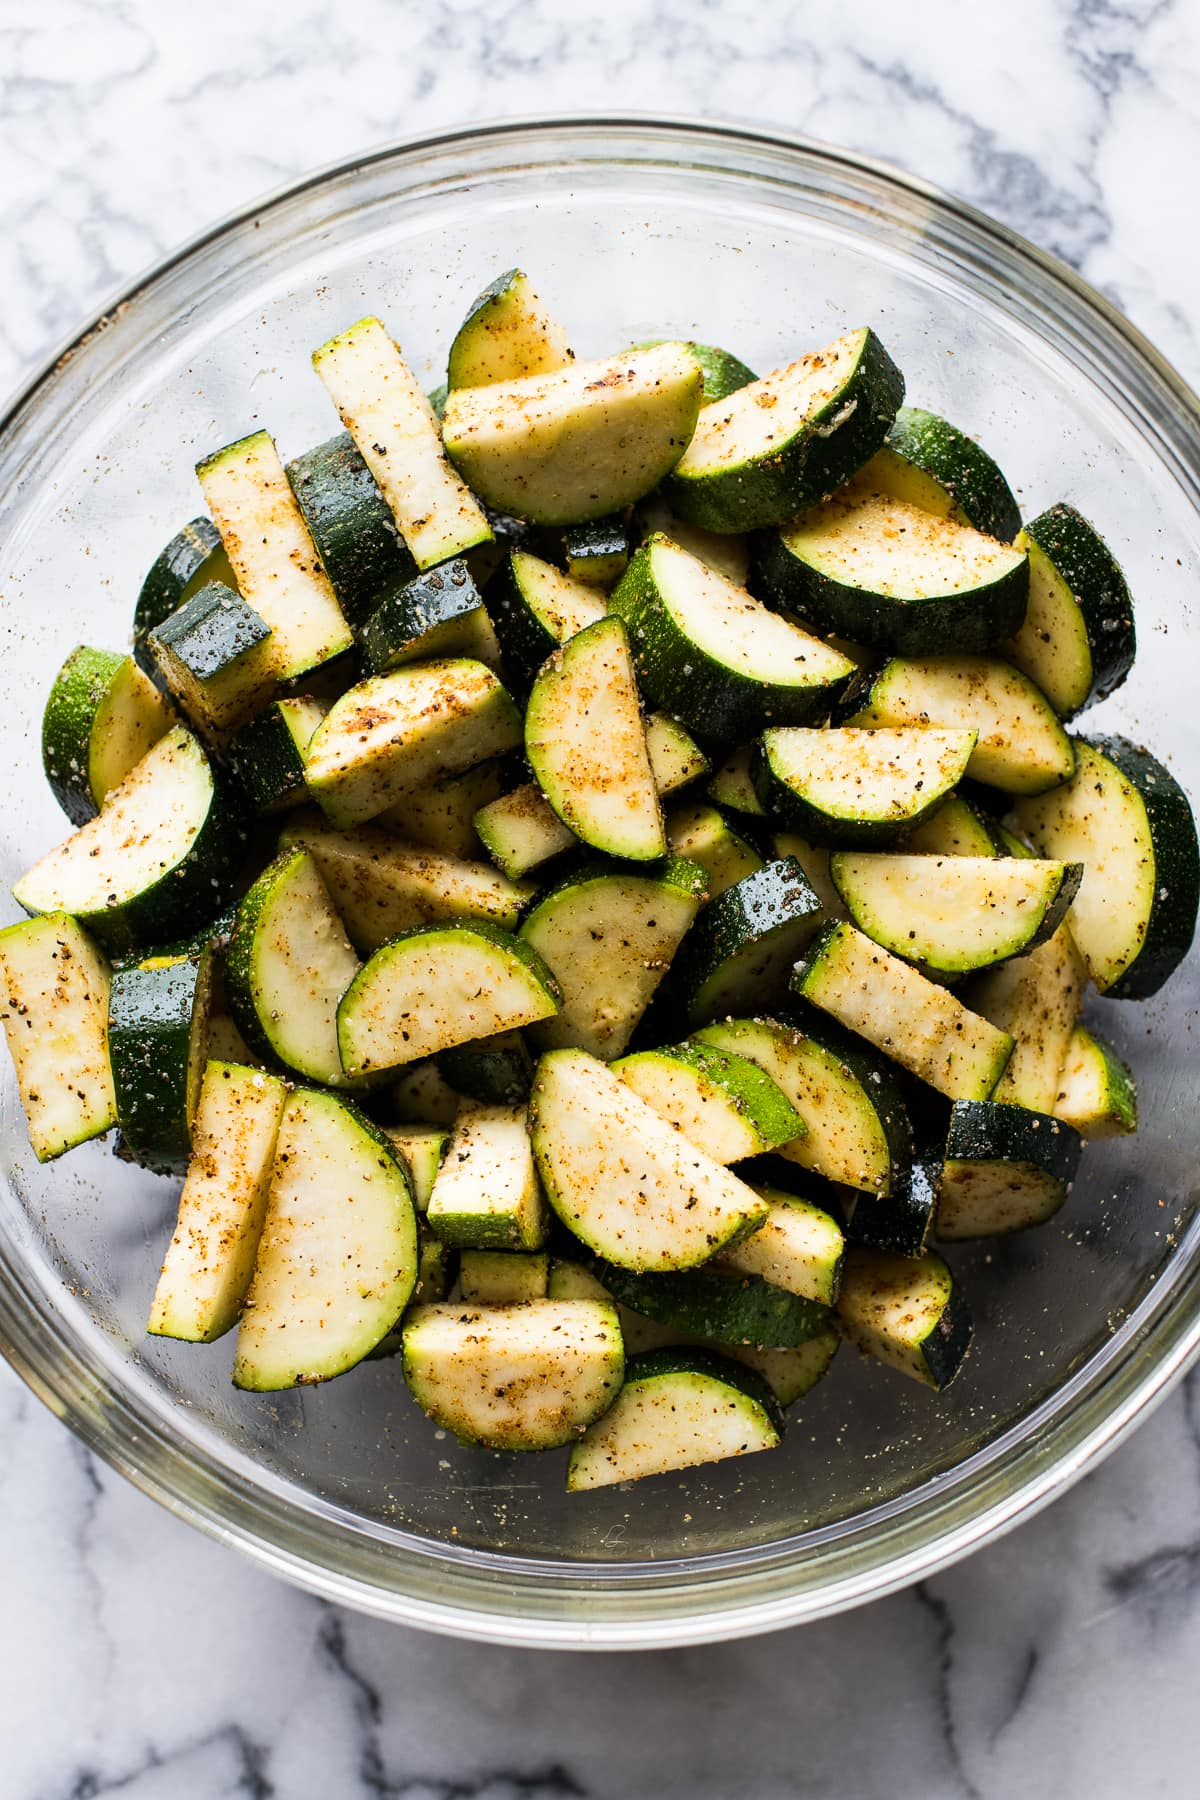 Sliced zucchini in a bowl tossed with spices.